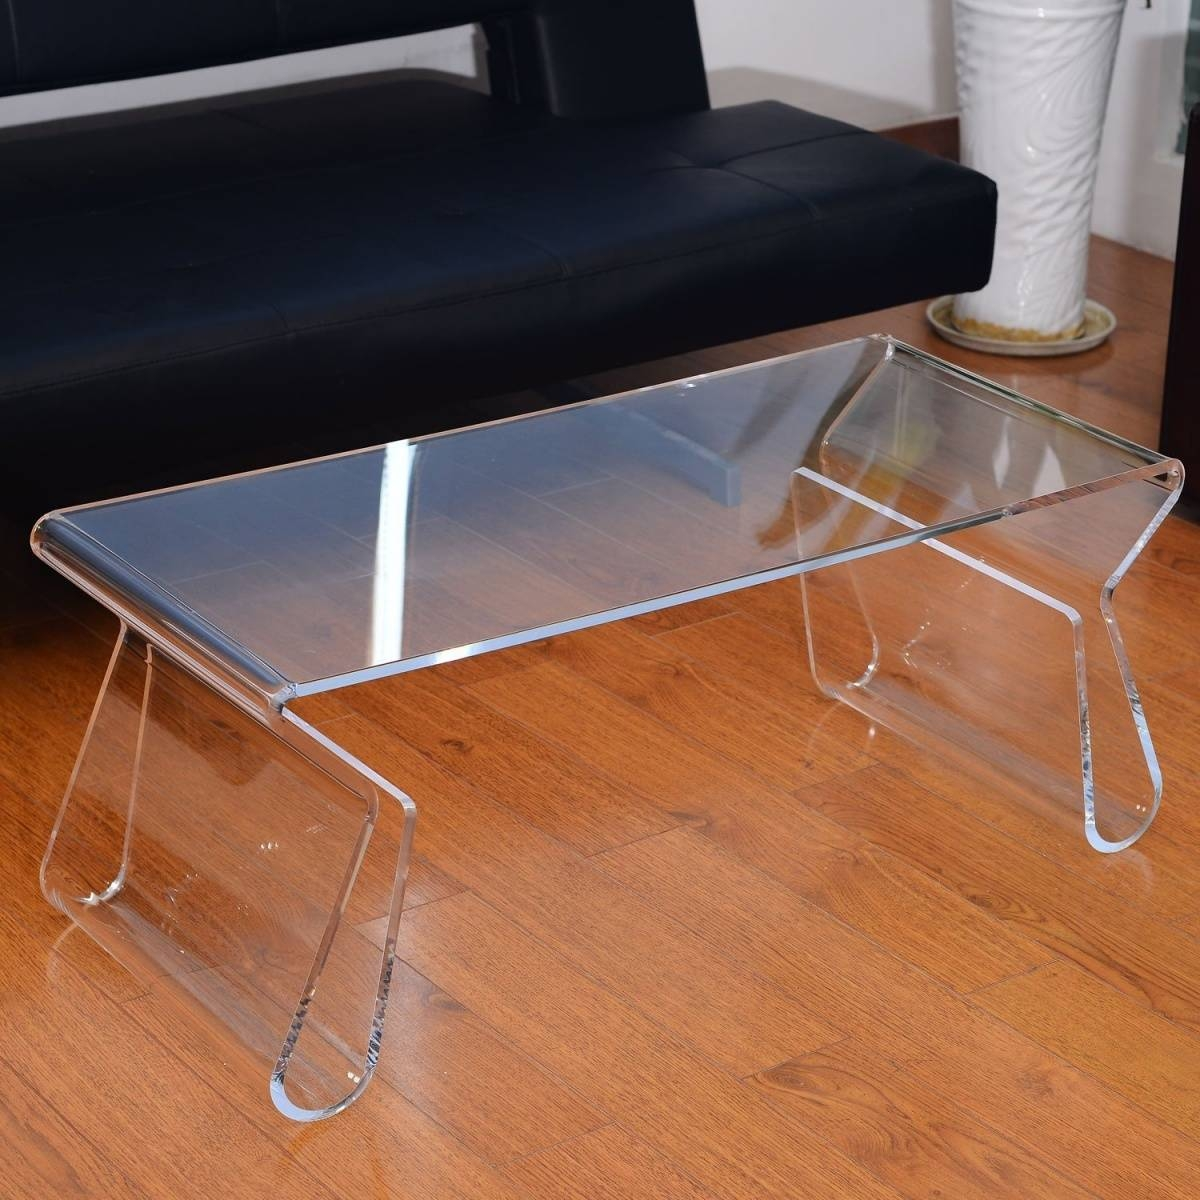 Plexiglass Coffee Tables Coffee Table Gallery Photos Of Acrylic for Acrylic Coffee Tables With Magazine Rack (Image 28 of 30)